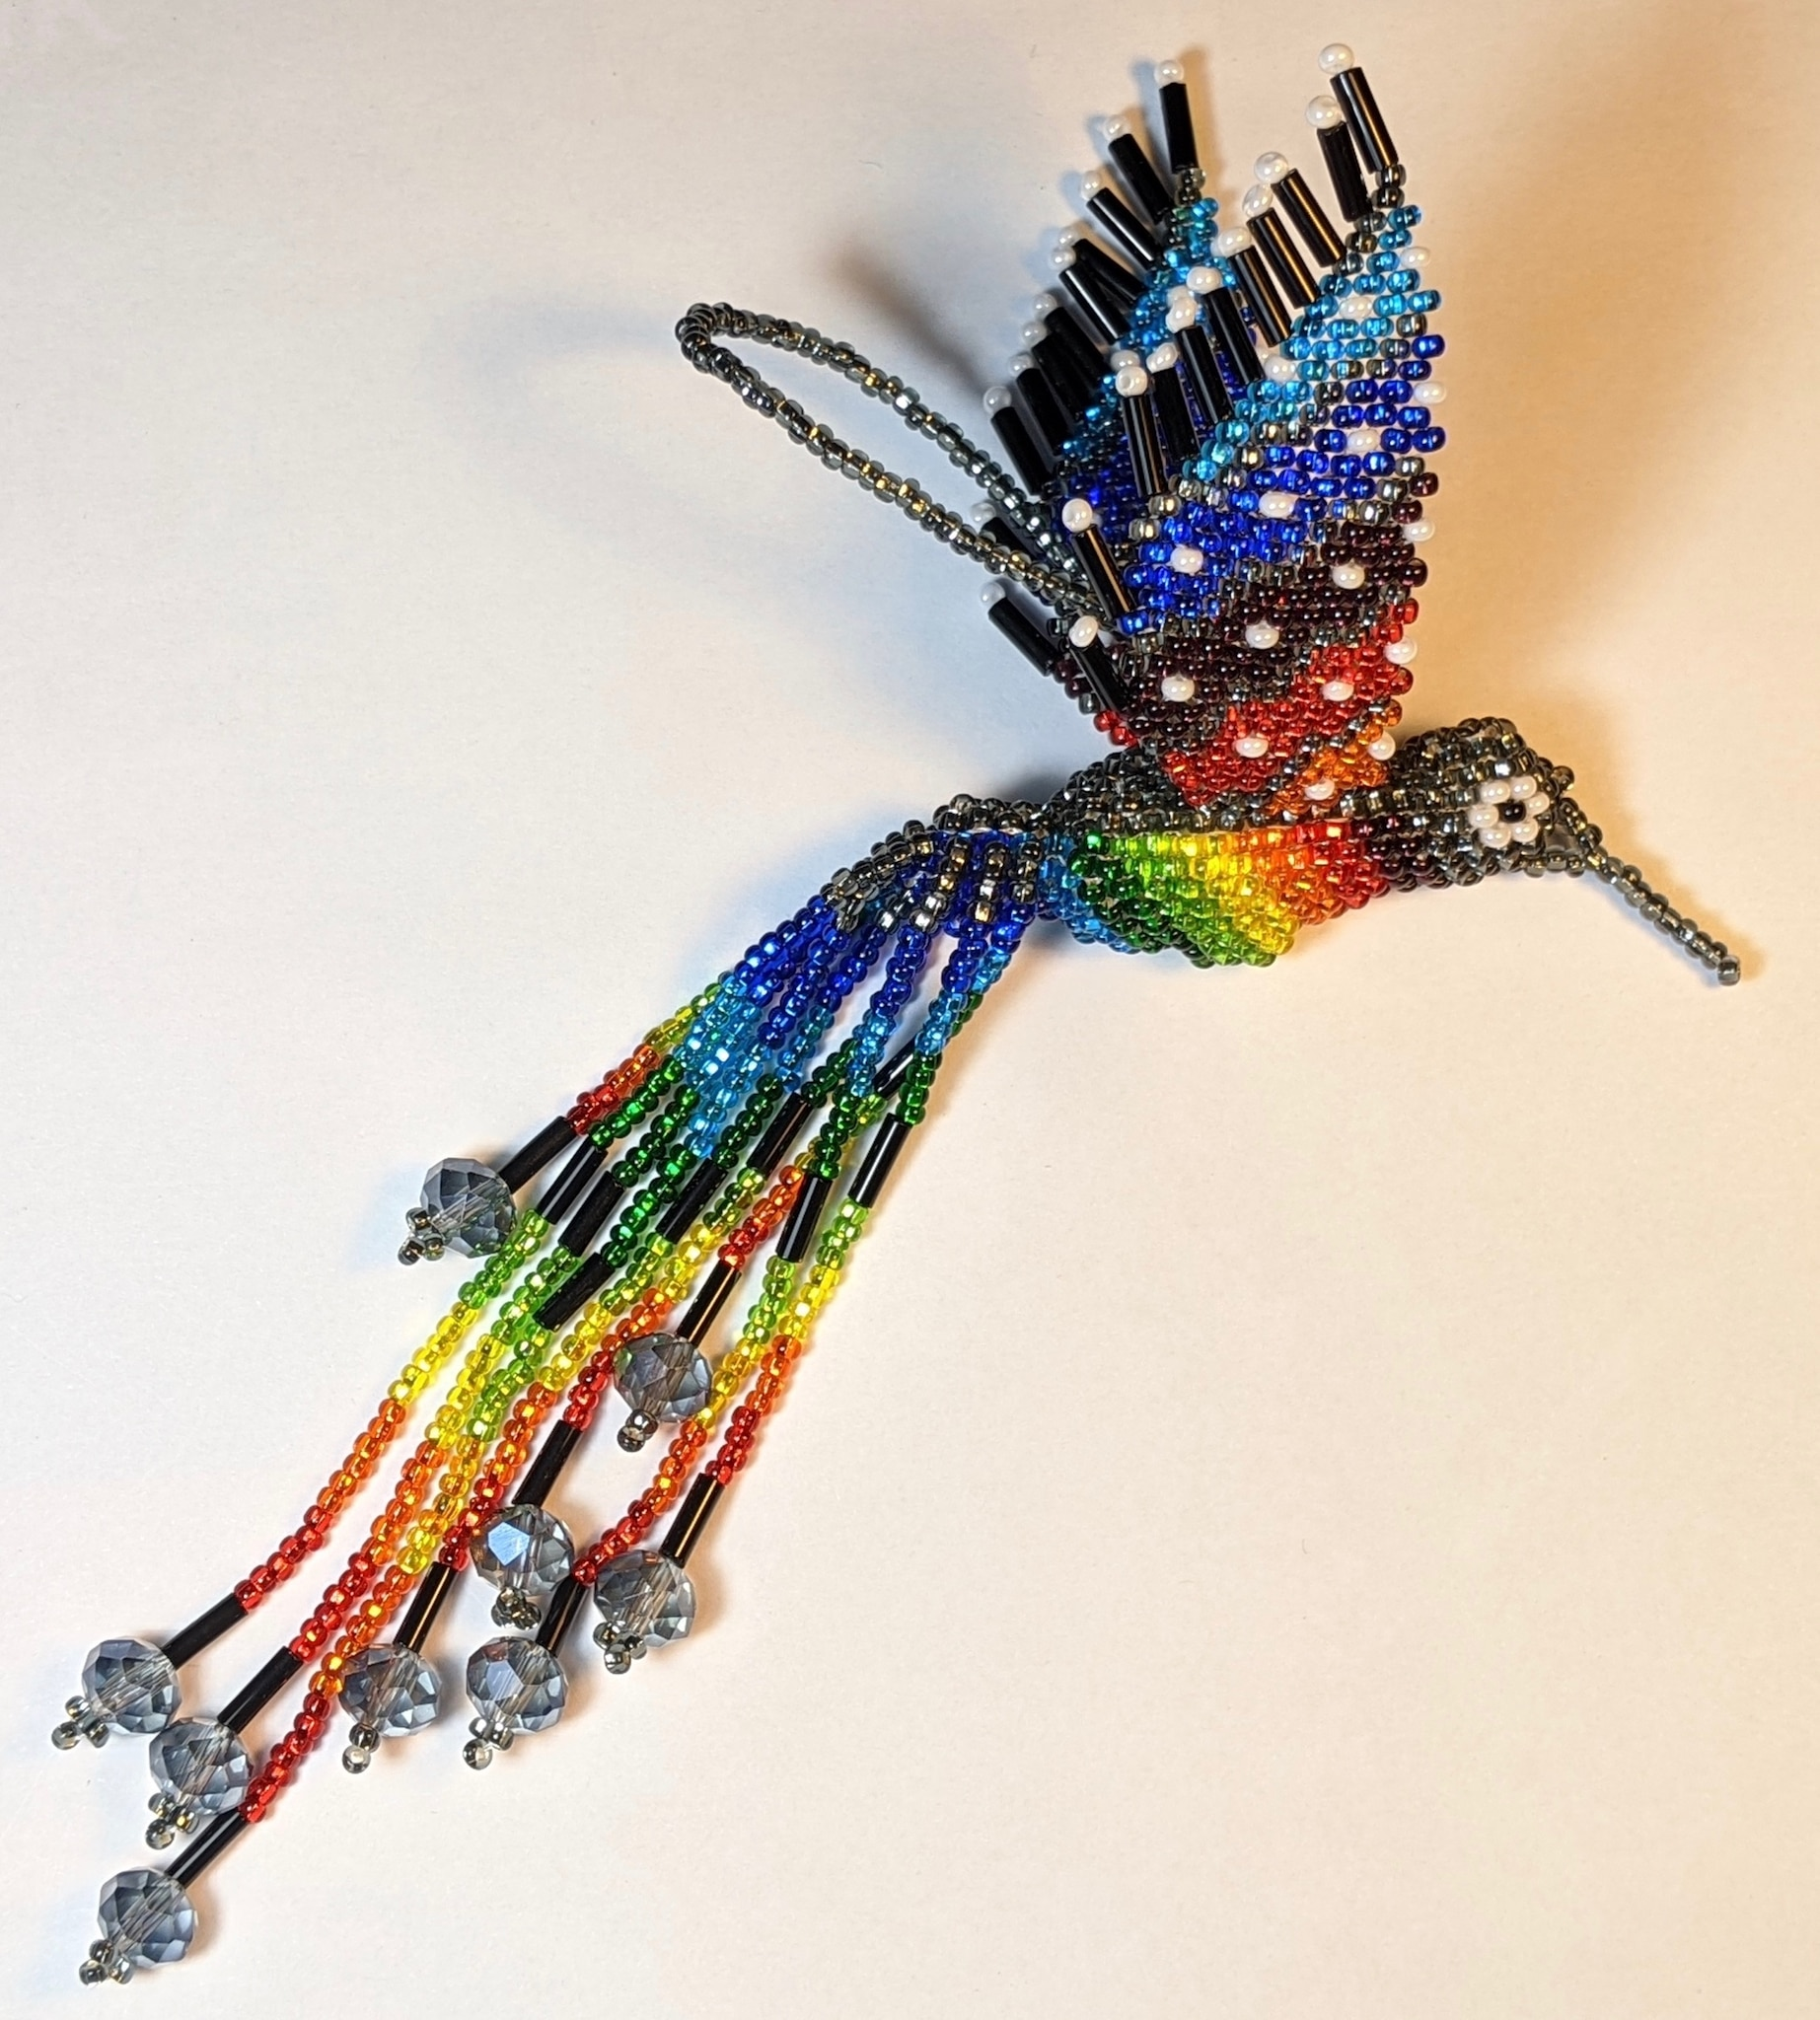 Hummingbird Beaded Ornament - Rainbow with Silver Gray and Pearl White Accents